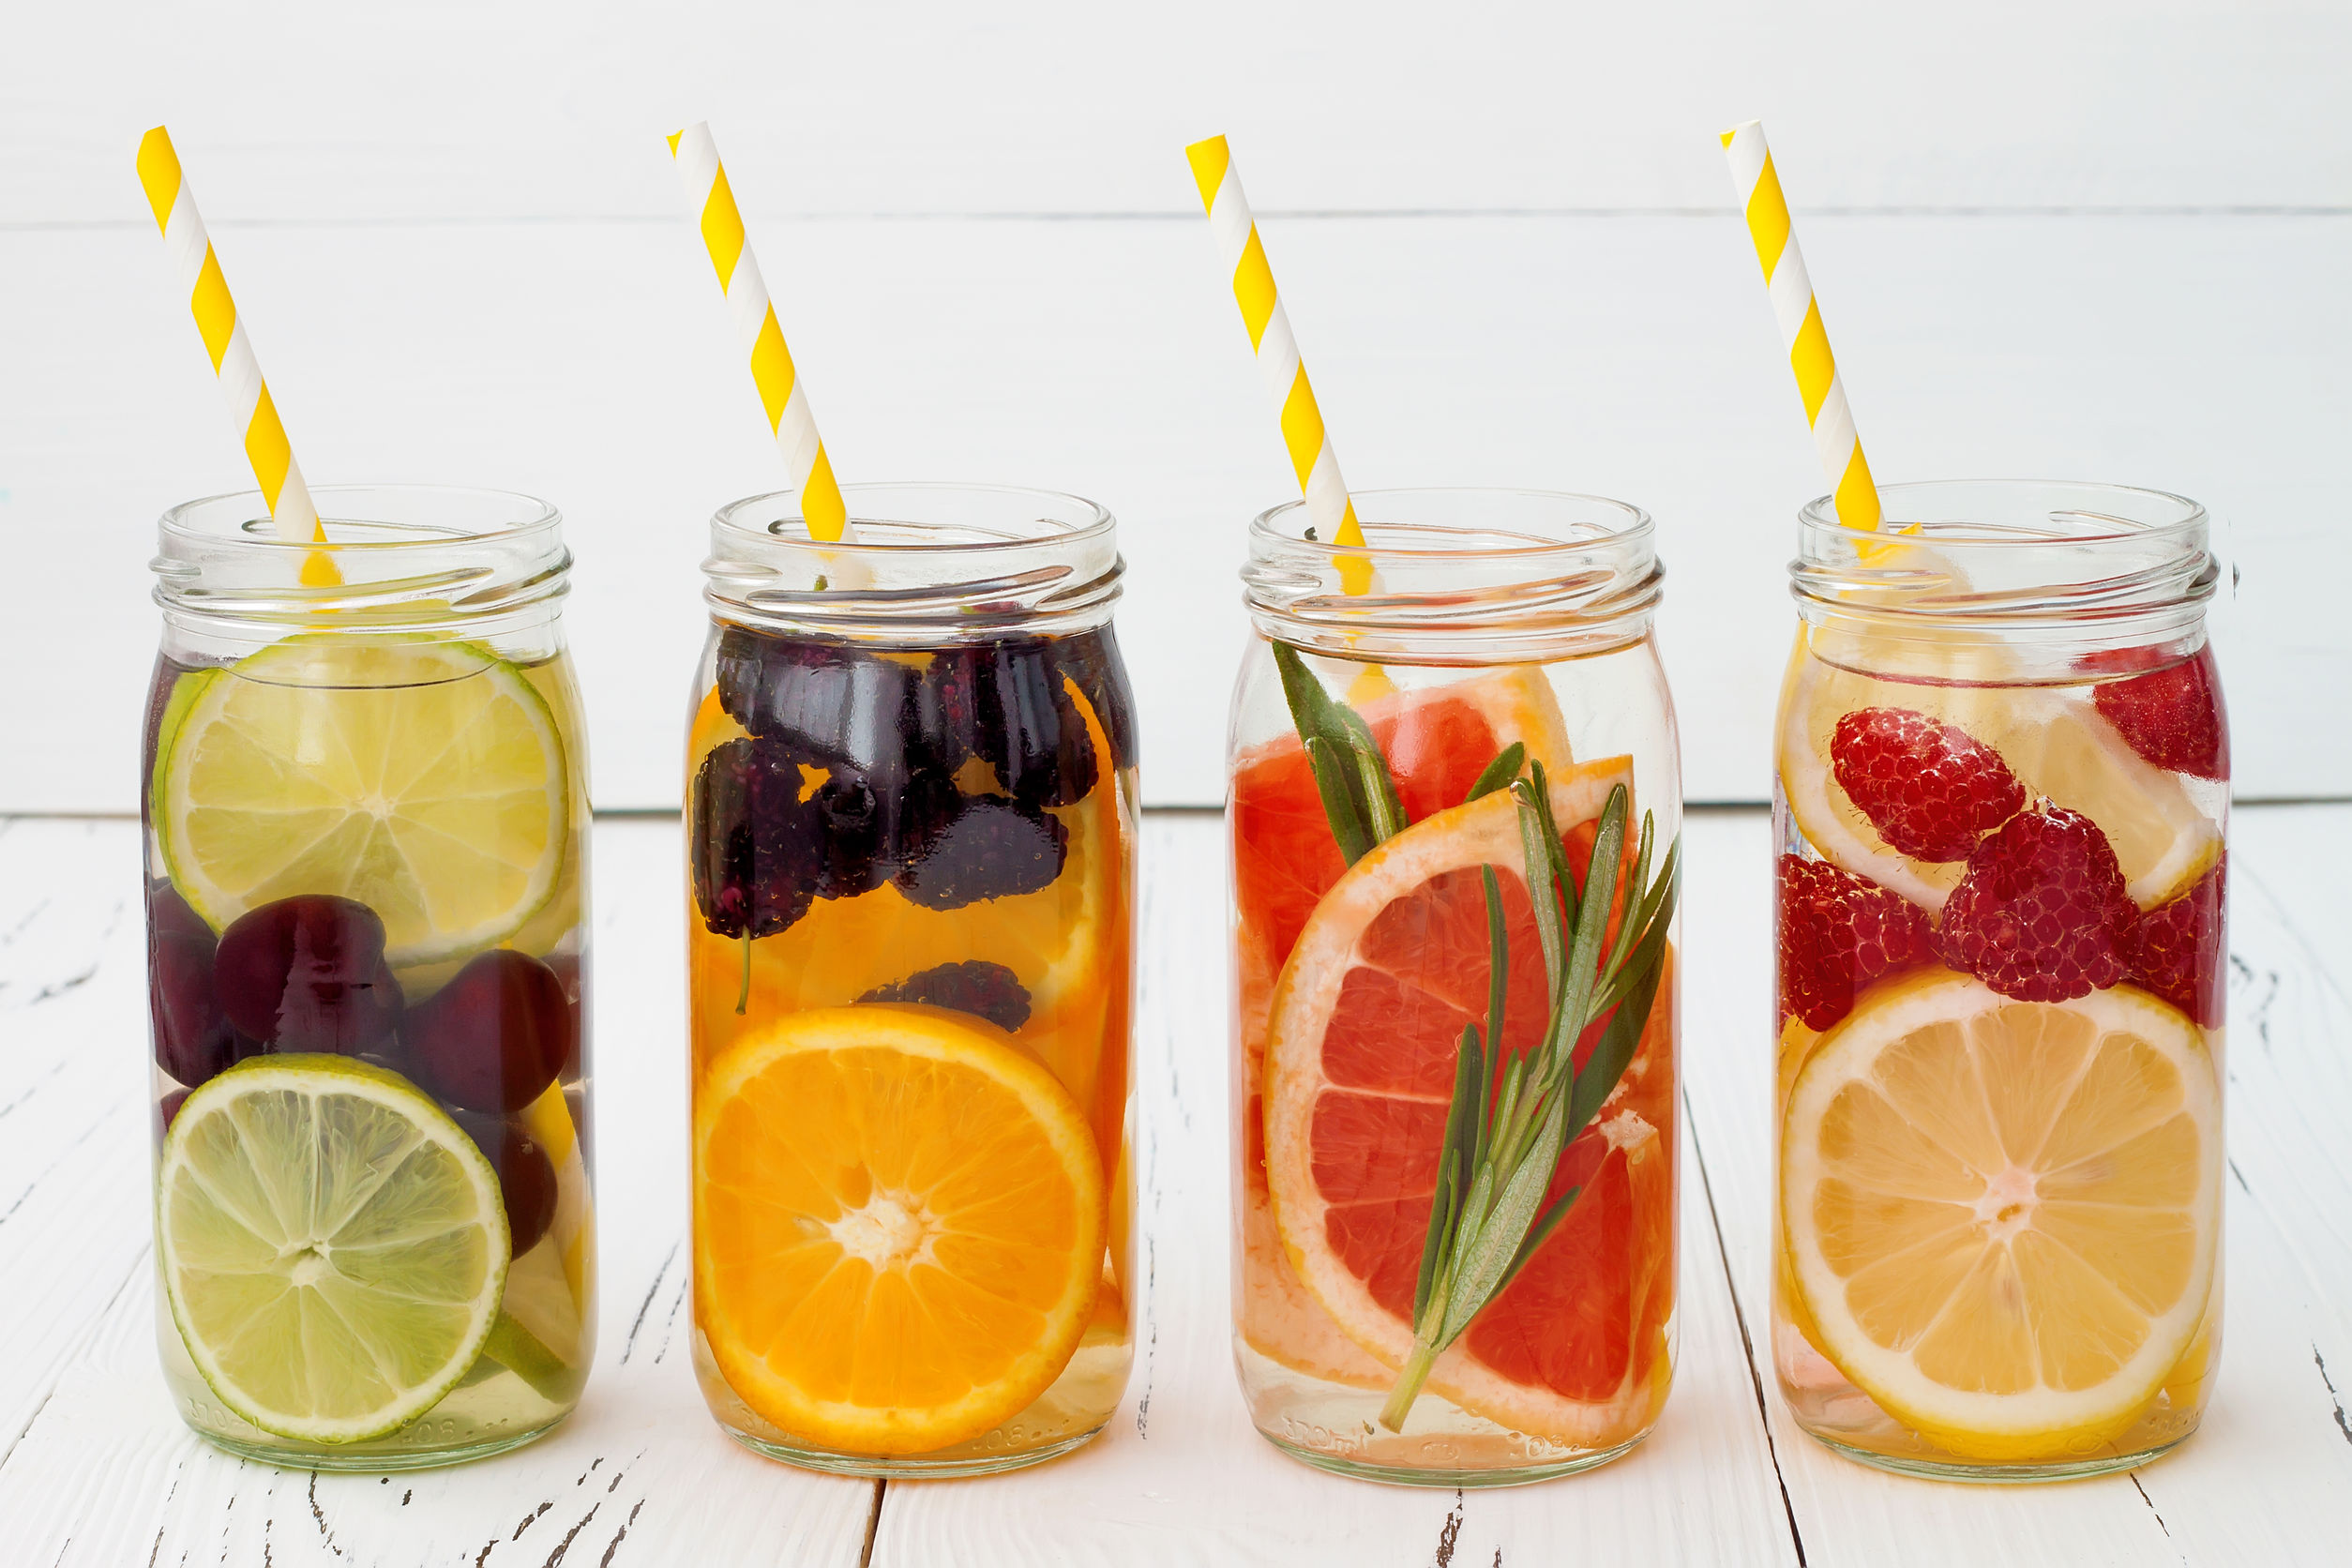 You ConDo It: Make Your Own Summer Drinks At Home